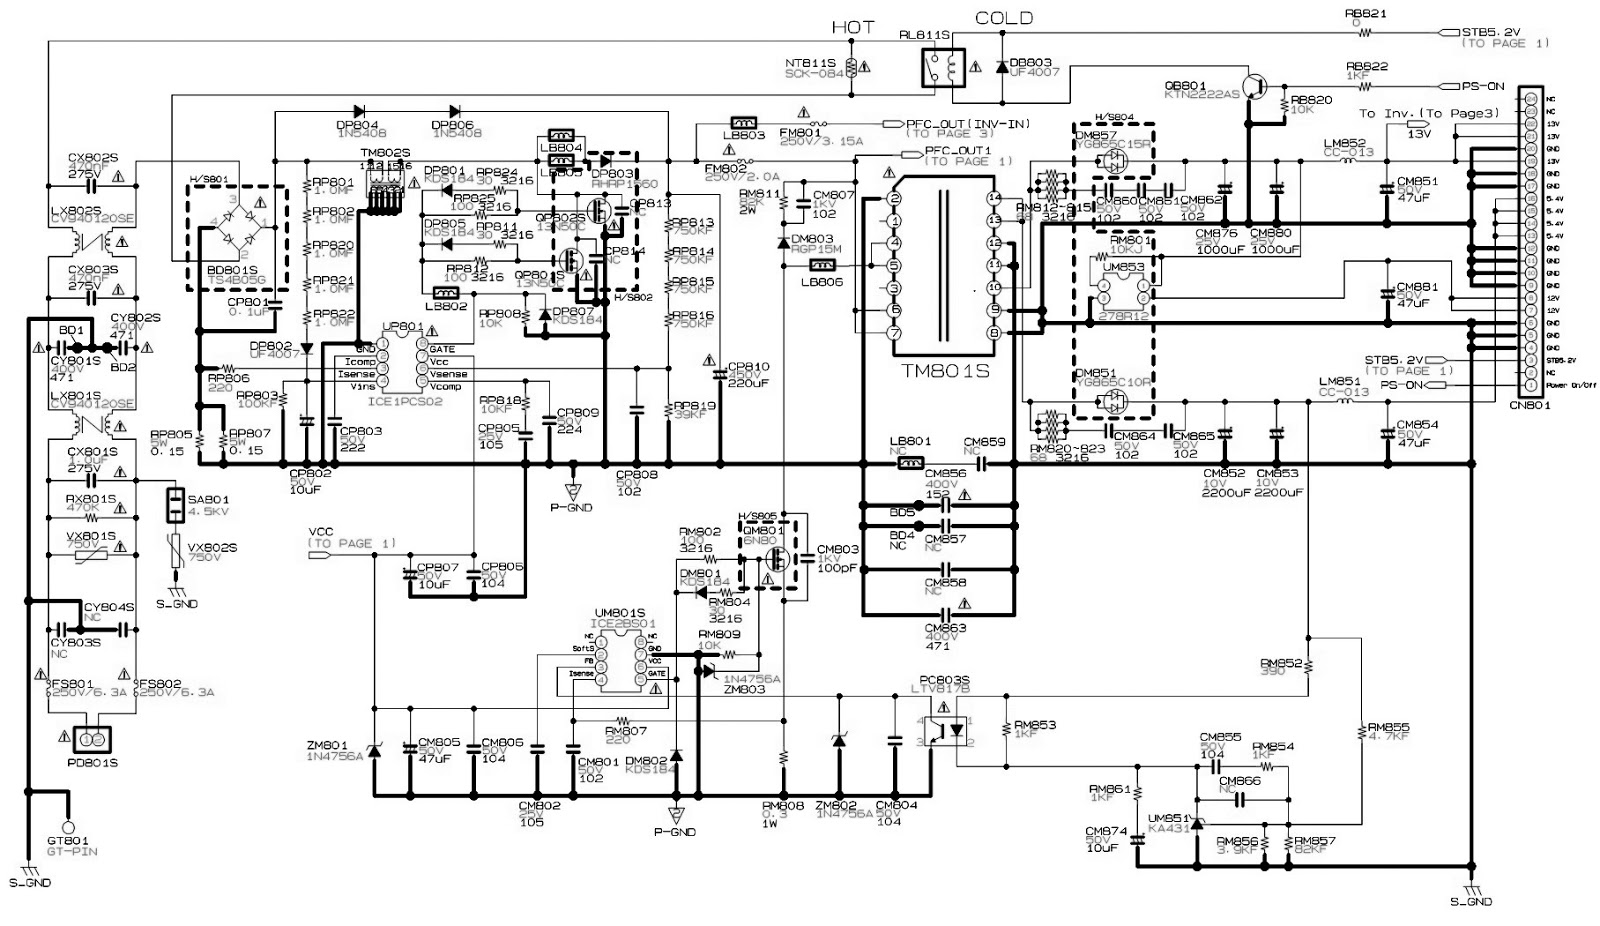 circuit diagram of samsung mobile